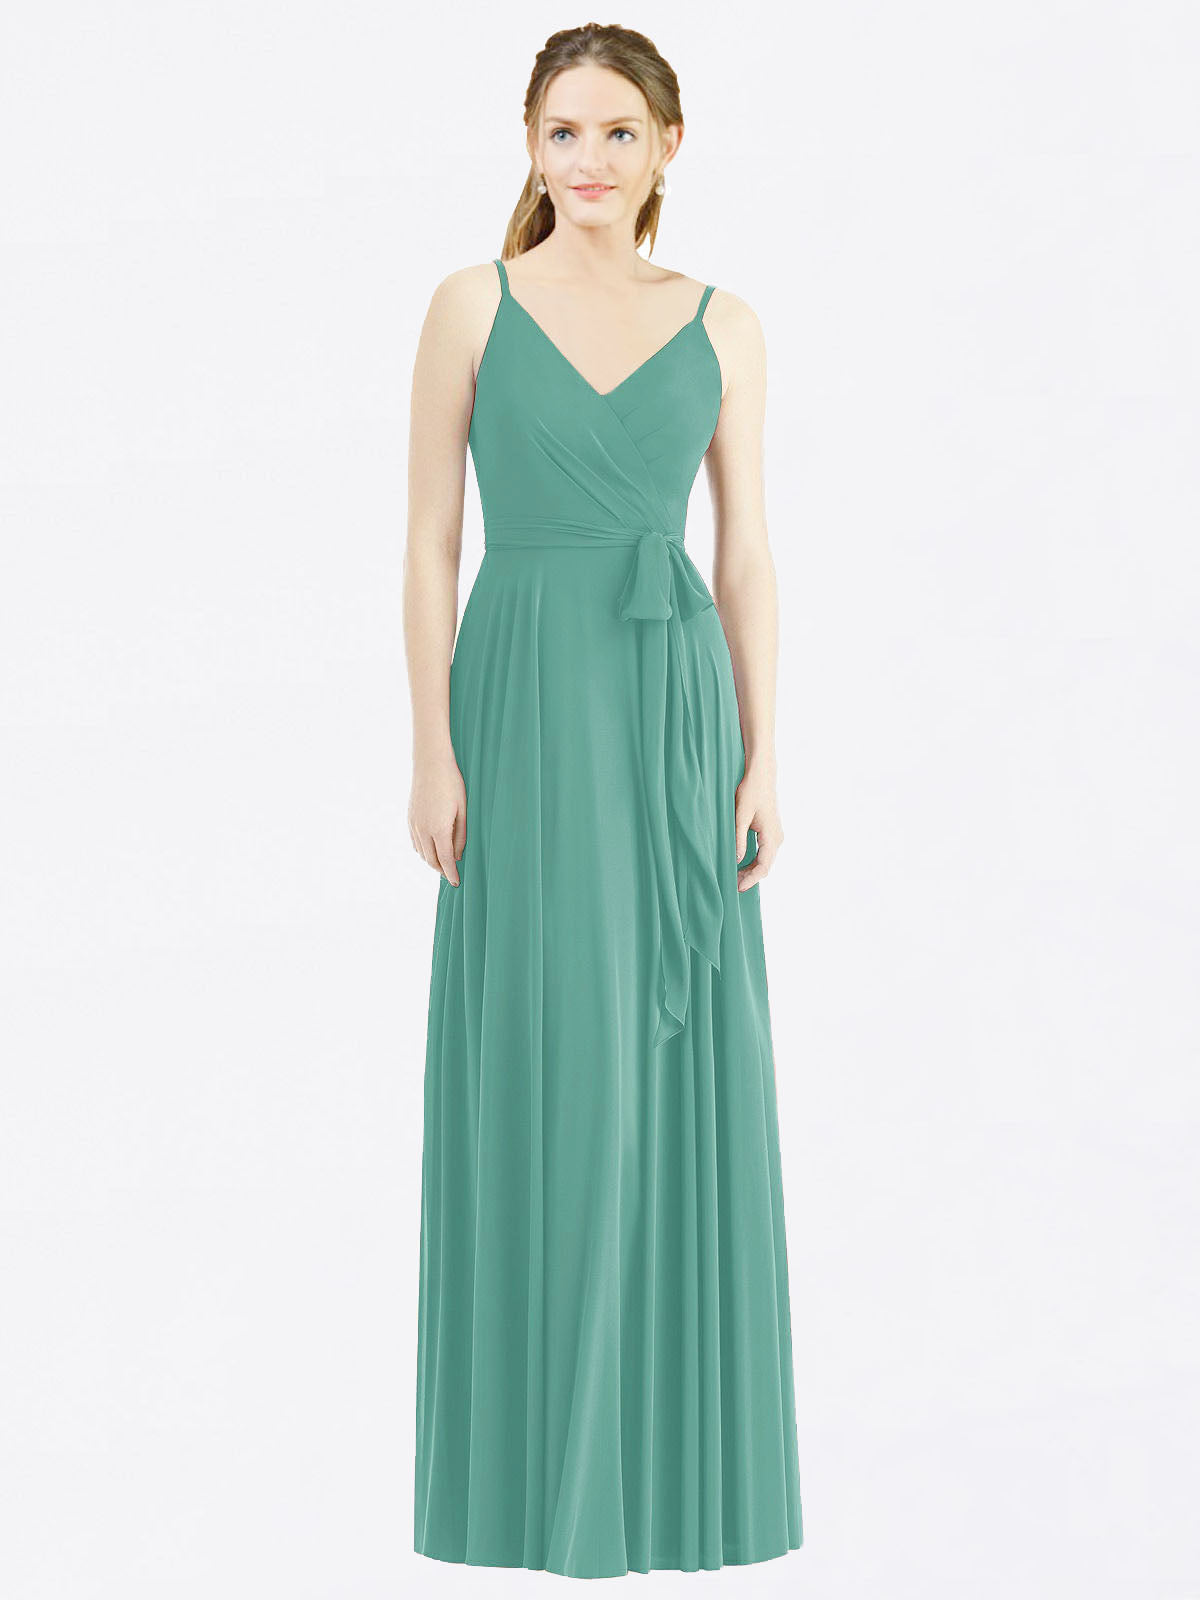 Long A-Line Spaghetti Straps, V-Neck Sleeveless Icelandic Silver Chiffon Bridesmaid Dress Madilyn